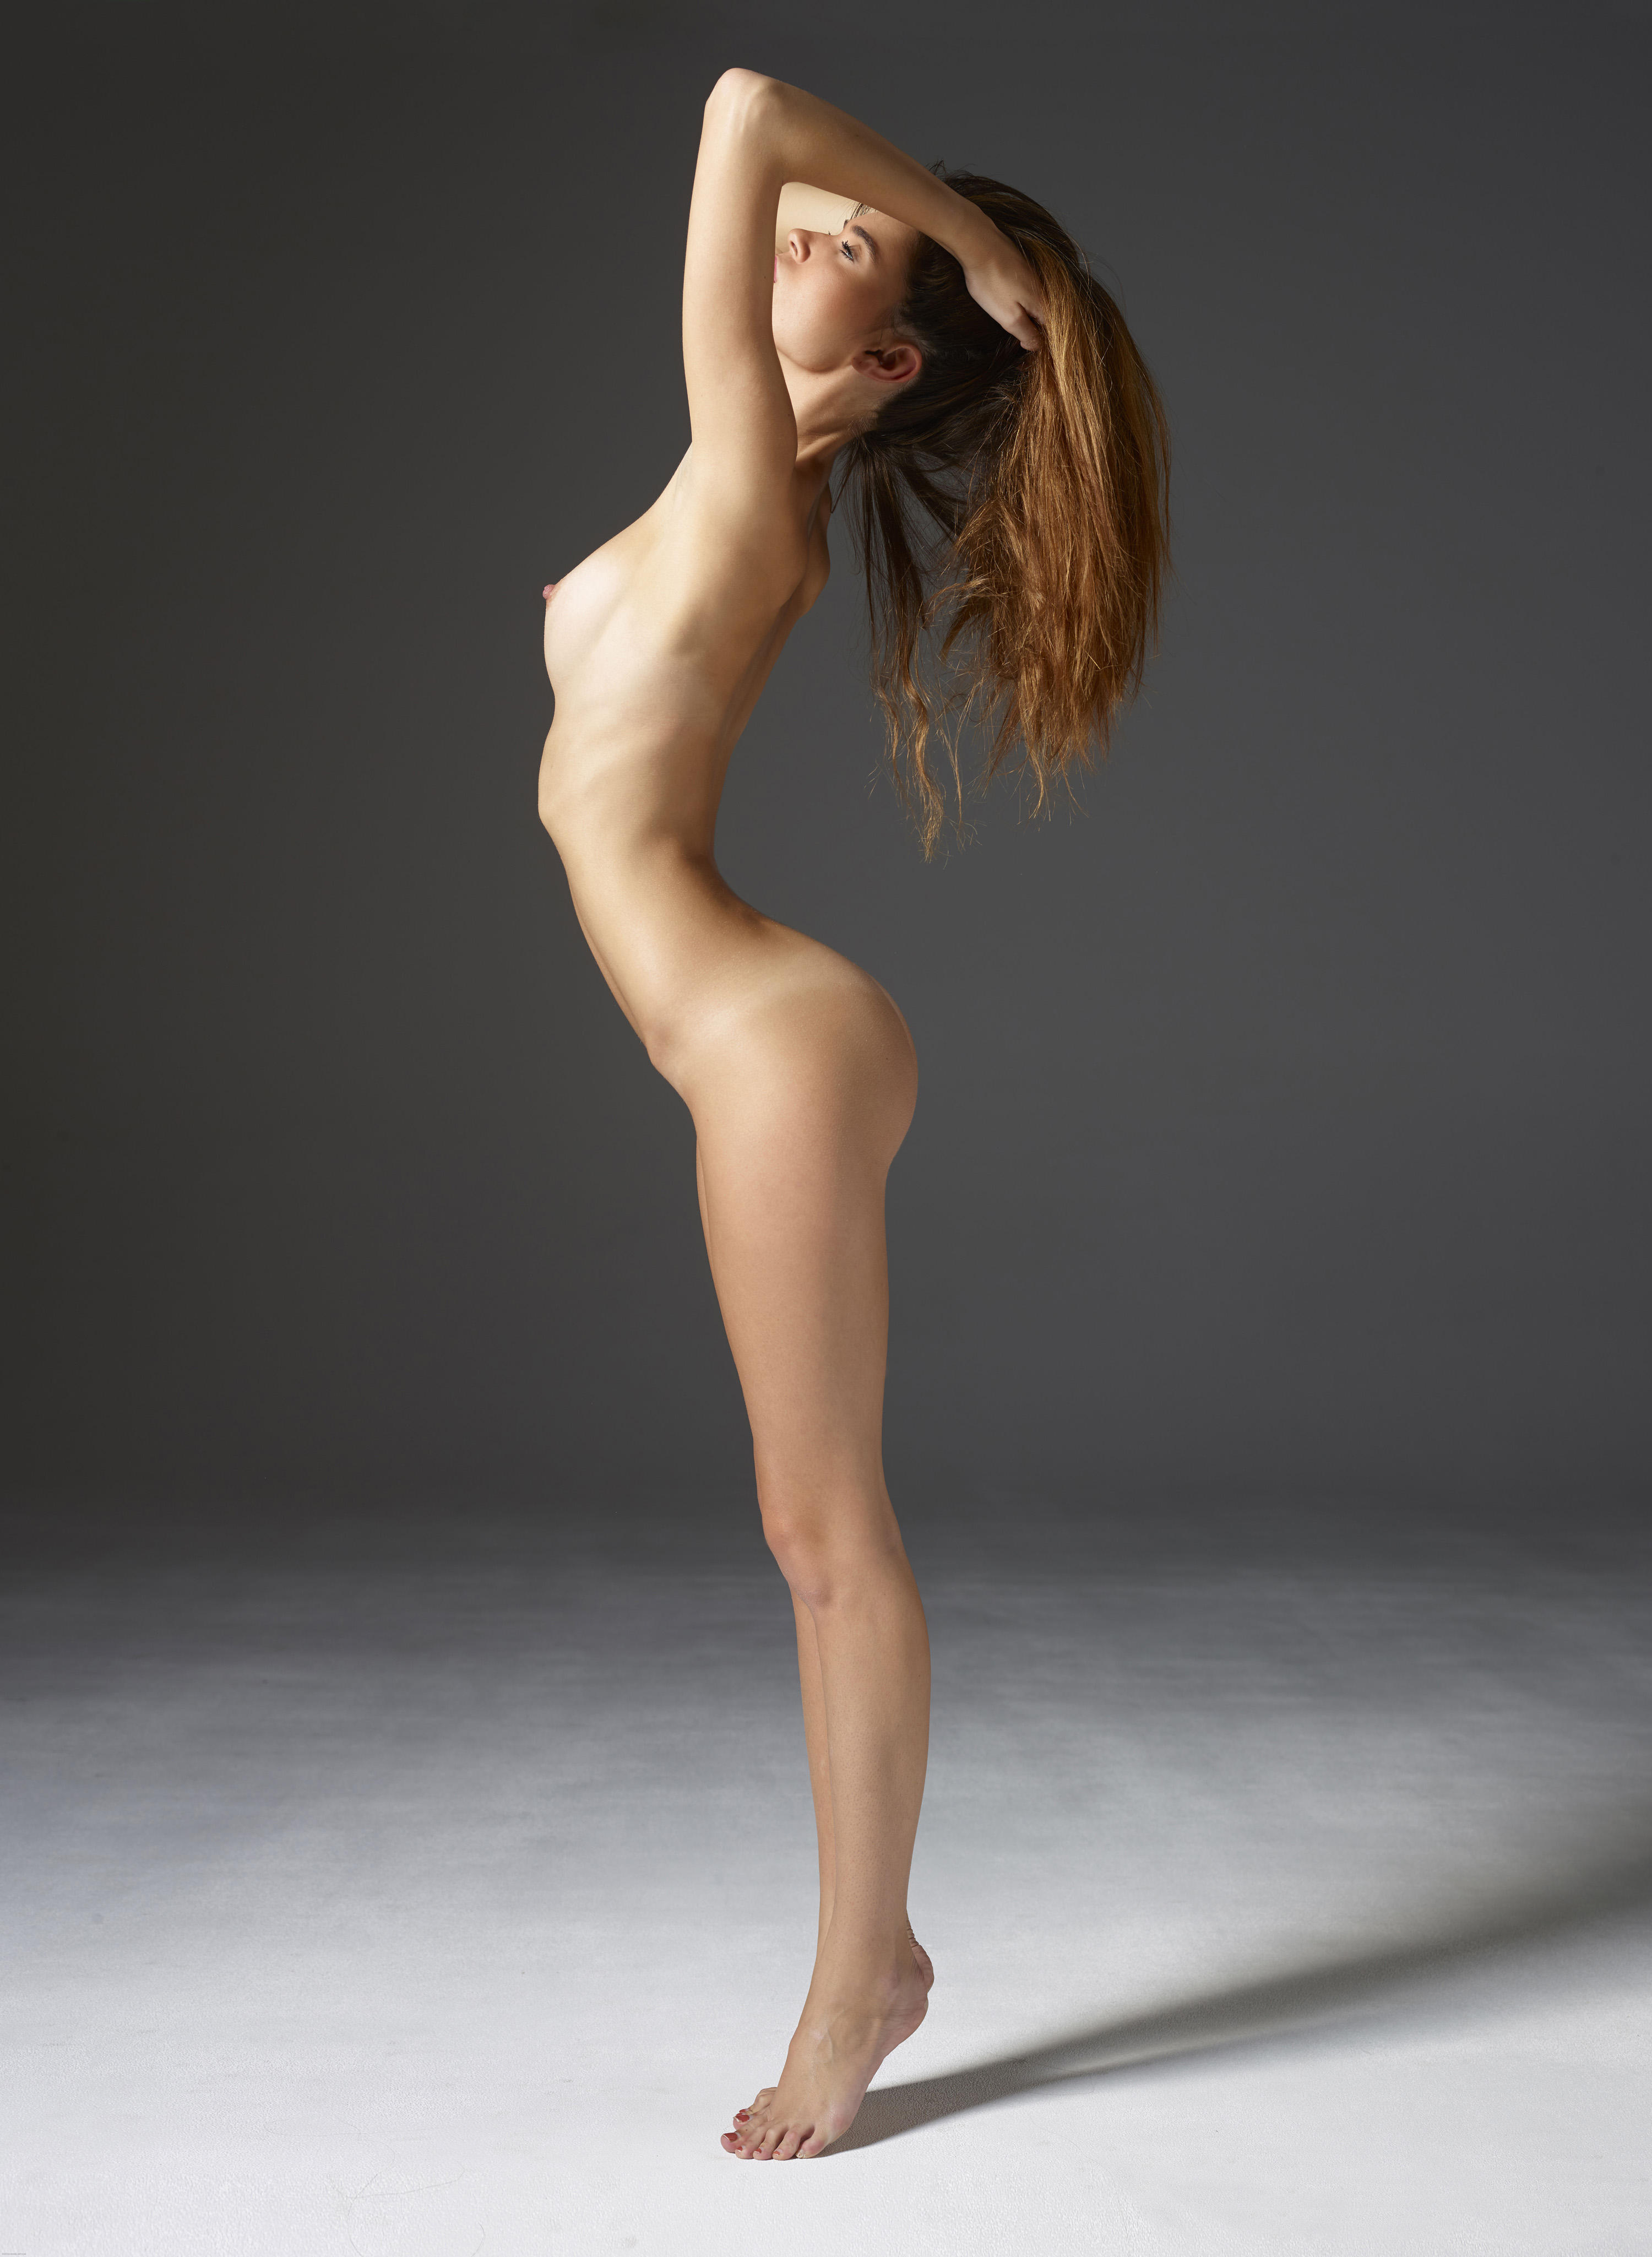 Images of only female naked models, amanda d pussy